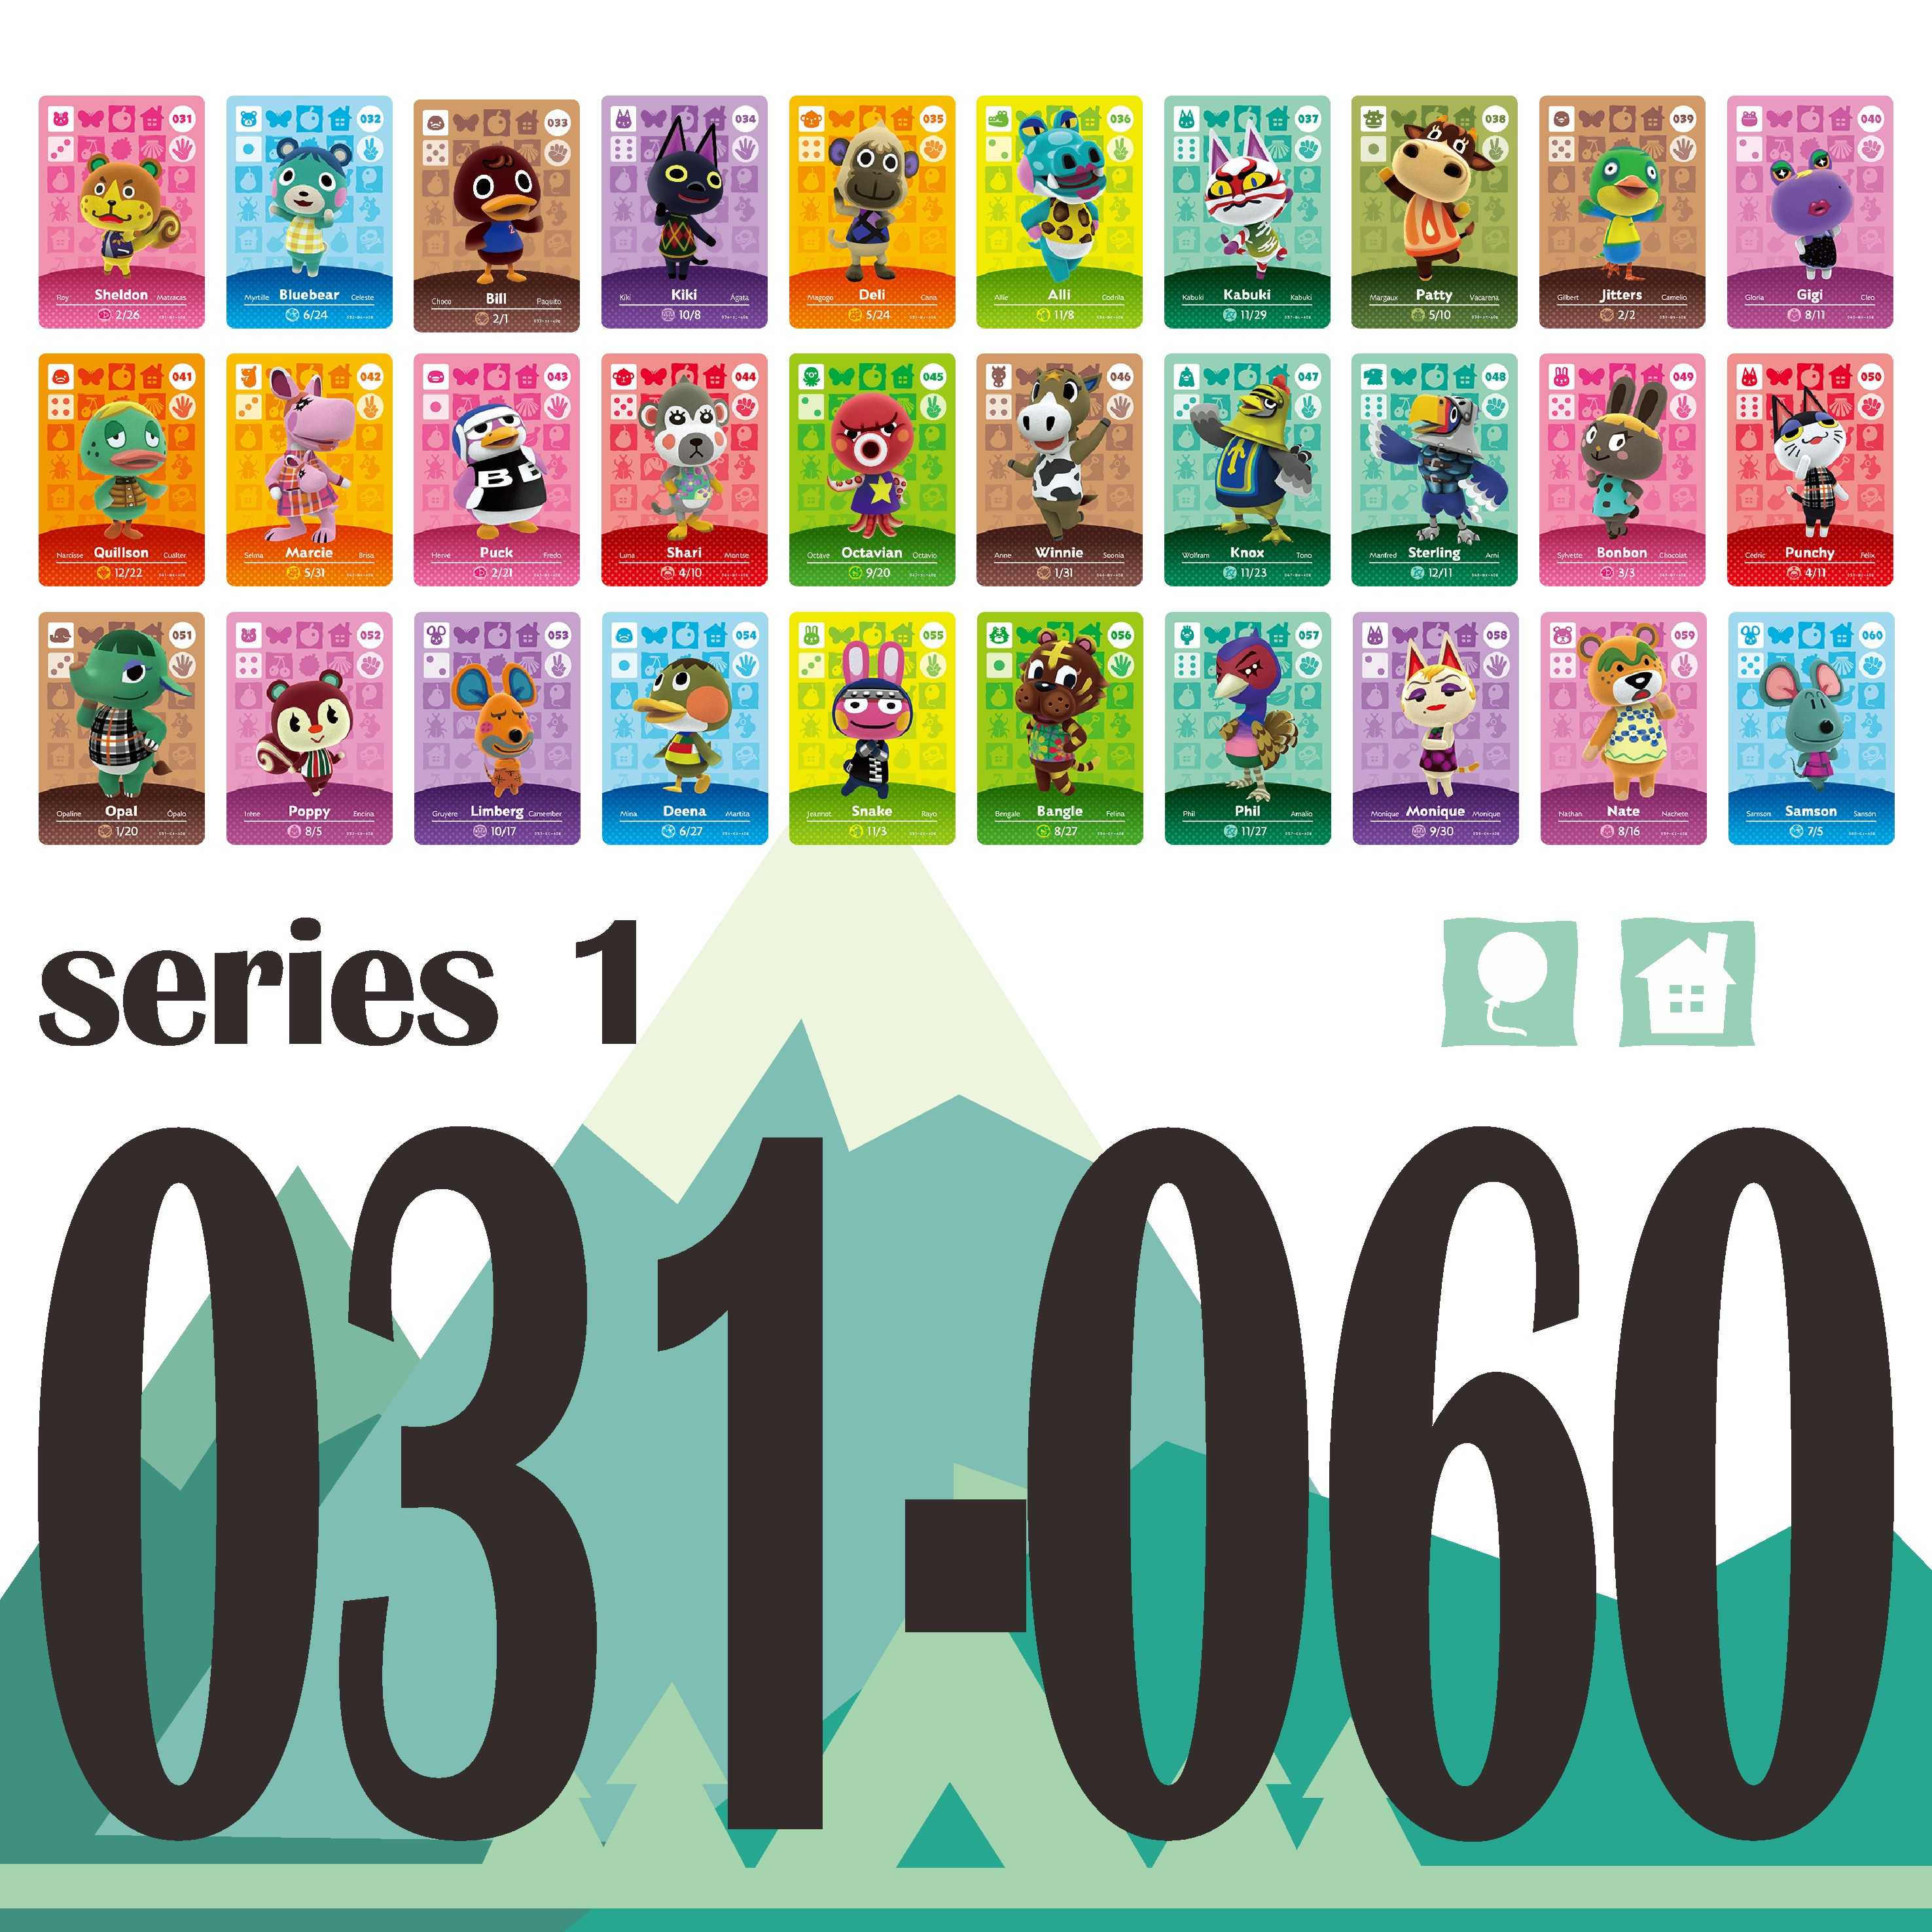 Animal Crossing Card Amiibo Card Work For NS Games Amibo Switch Rosie Welcome Stickers New Horizons NFC Series 1 (031 To 060)